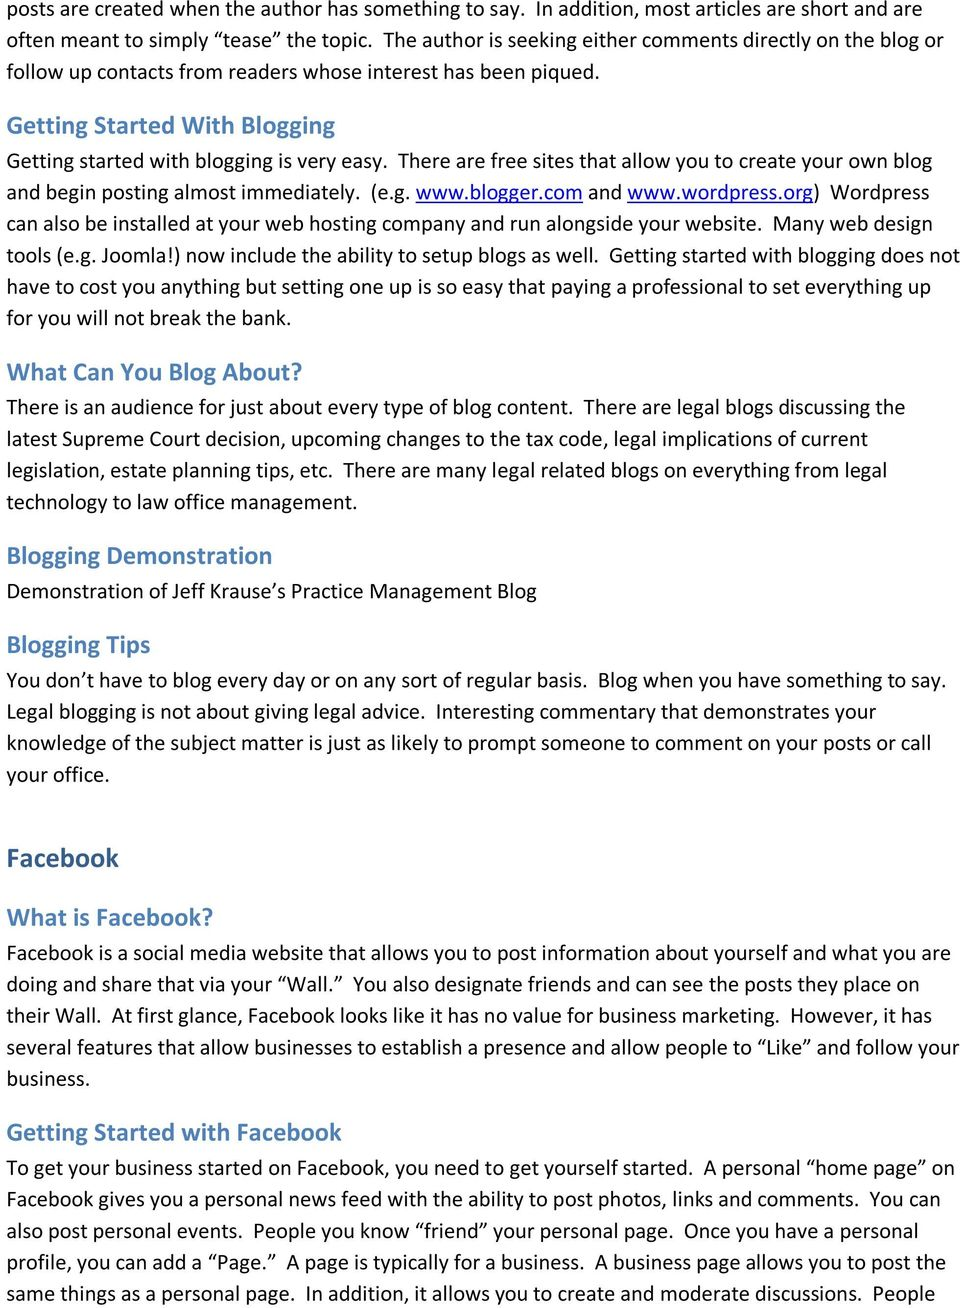 There are free sites that allow you to create your own blog and begin posting almost immediately. (e.g. www.blogger.com and www.wordpress.